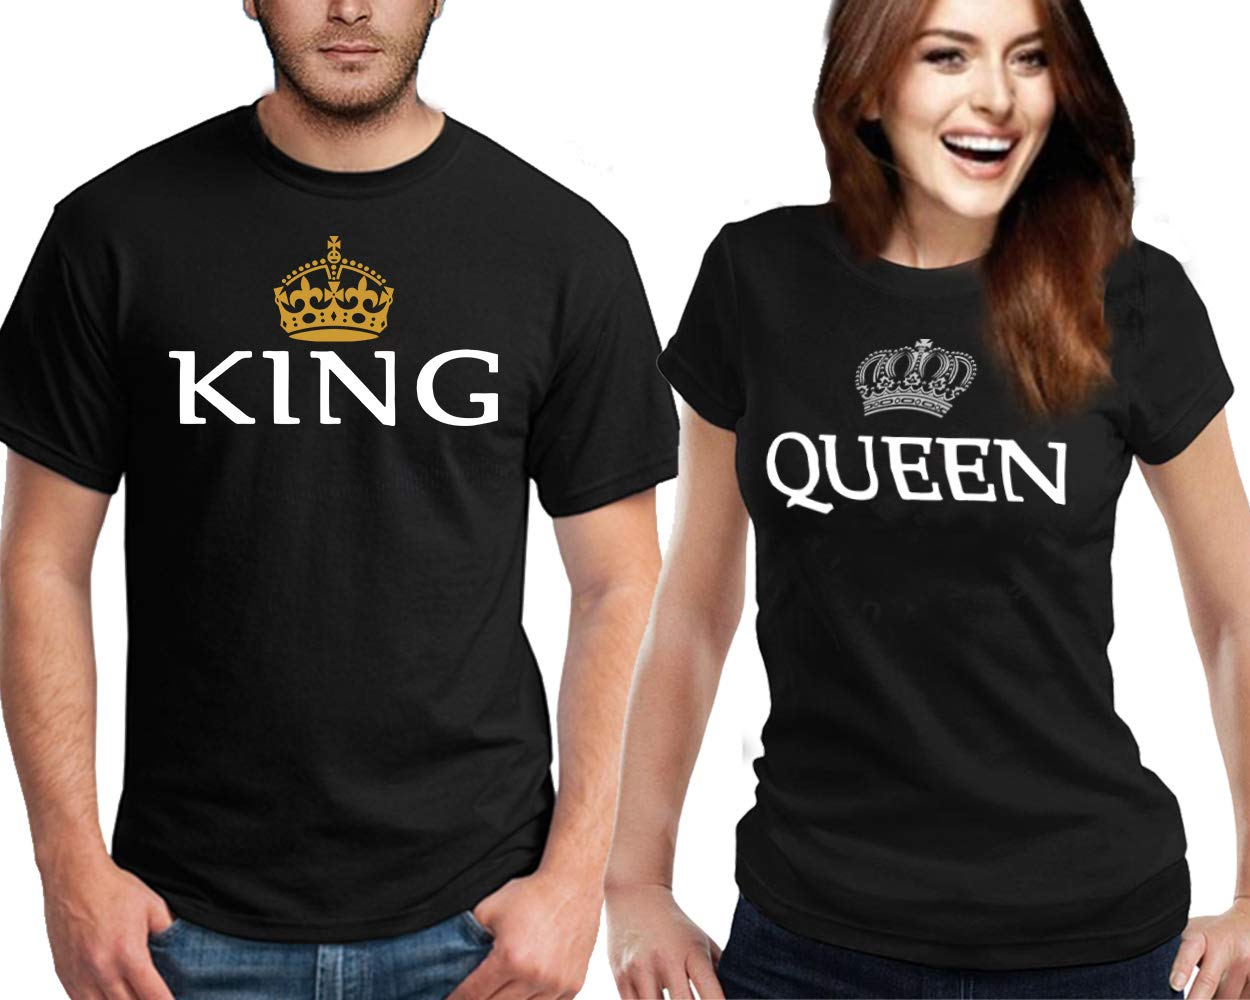 Matching Couple Shirts King and Queen Tshirts | His and Hers T Shirts